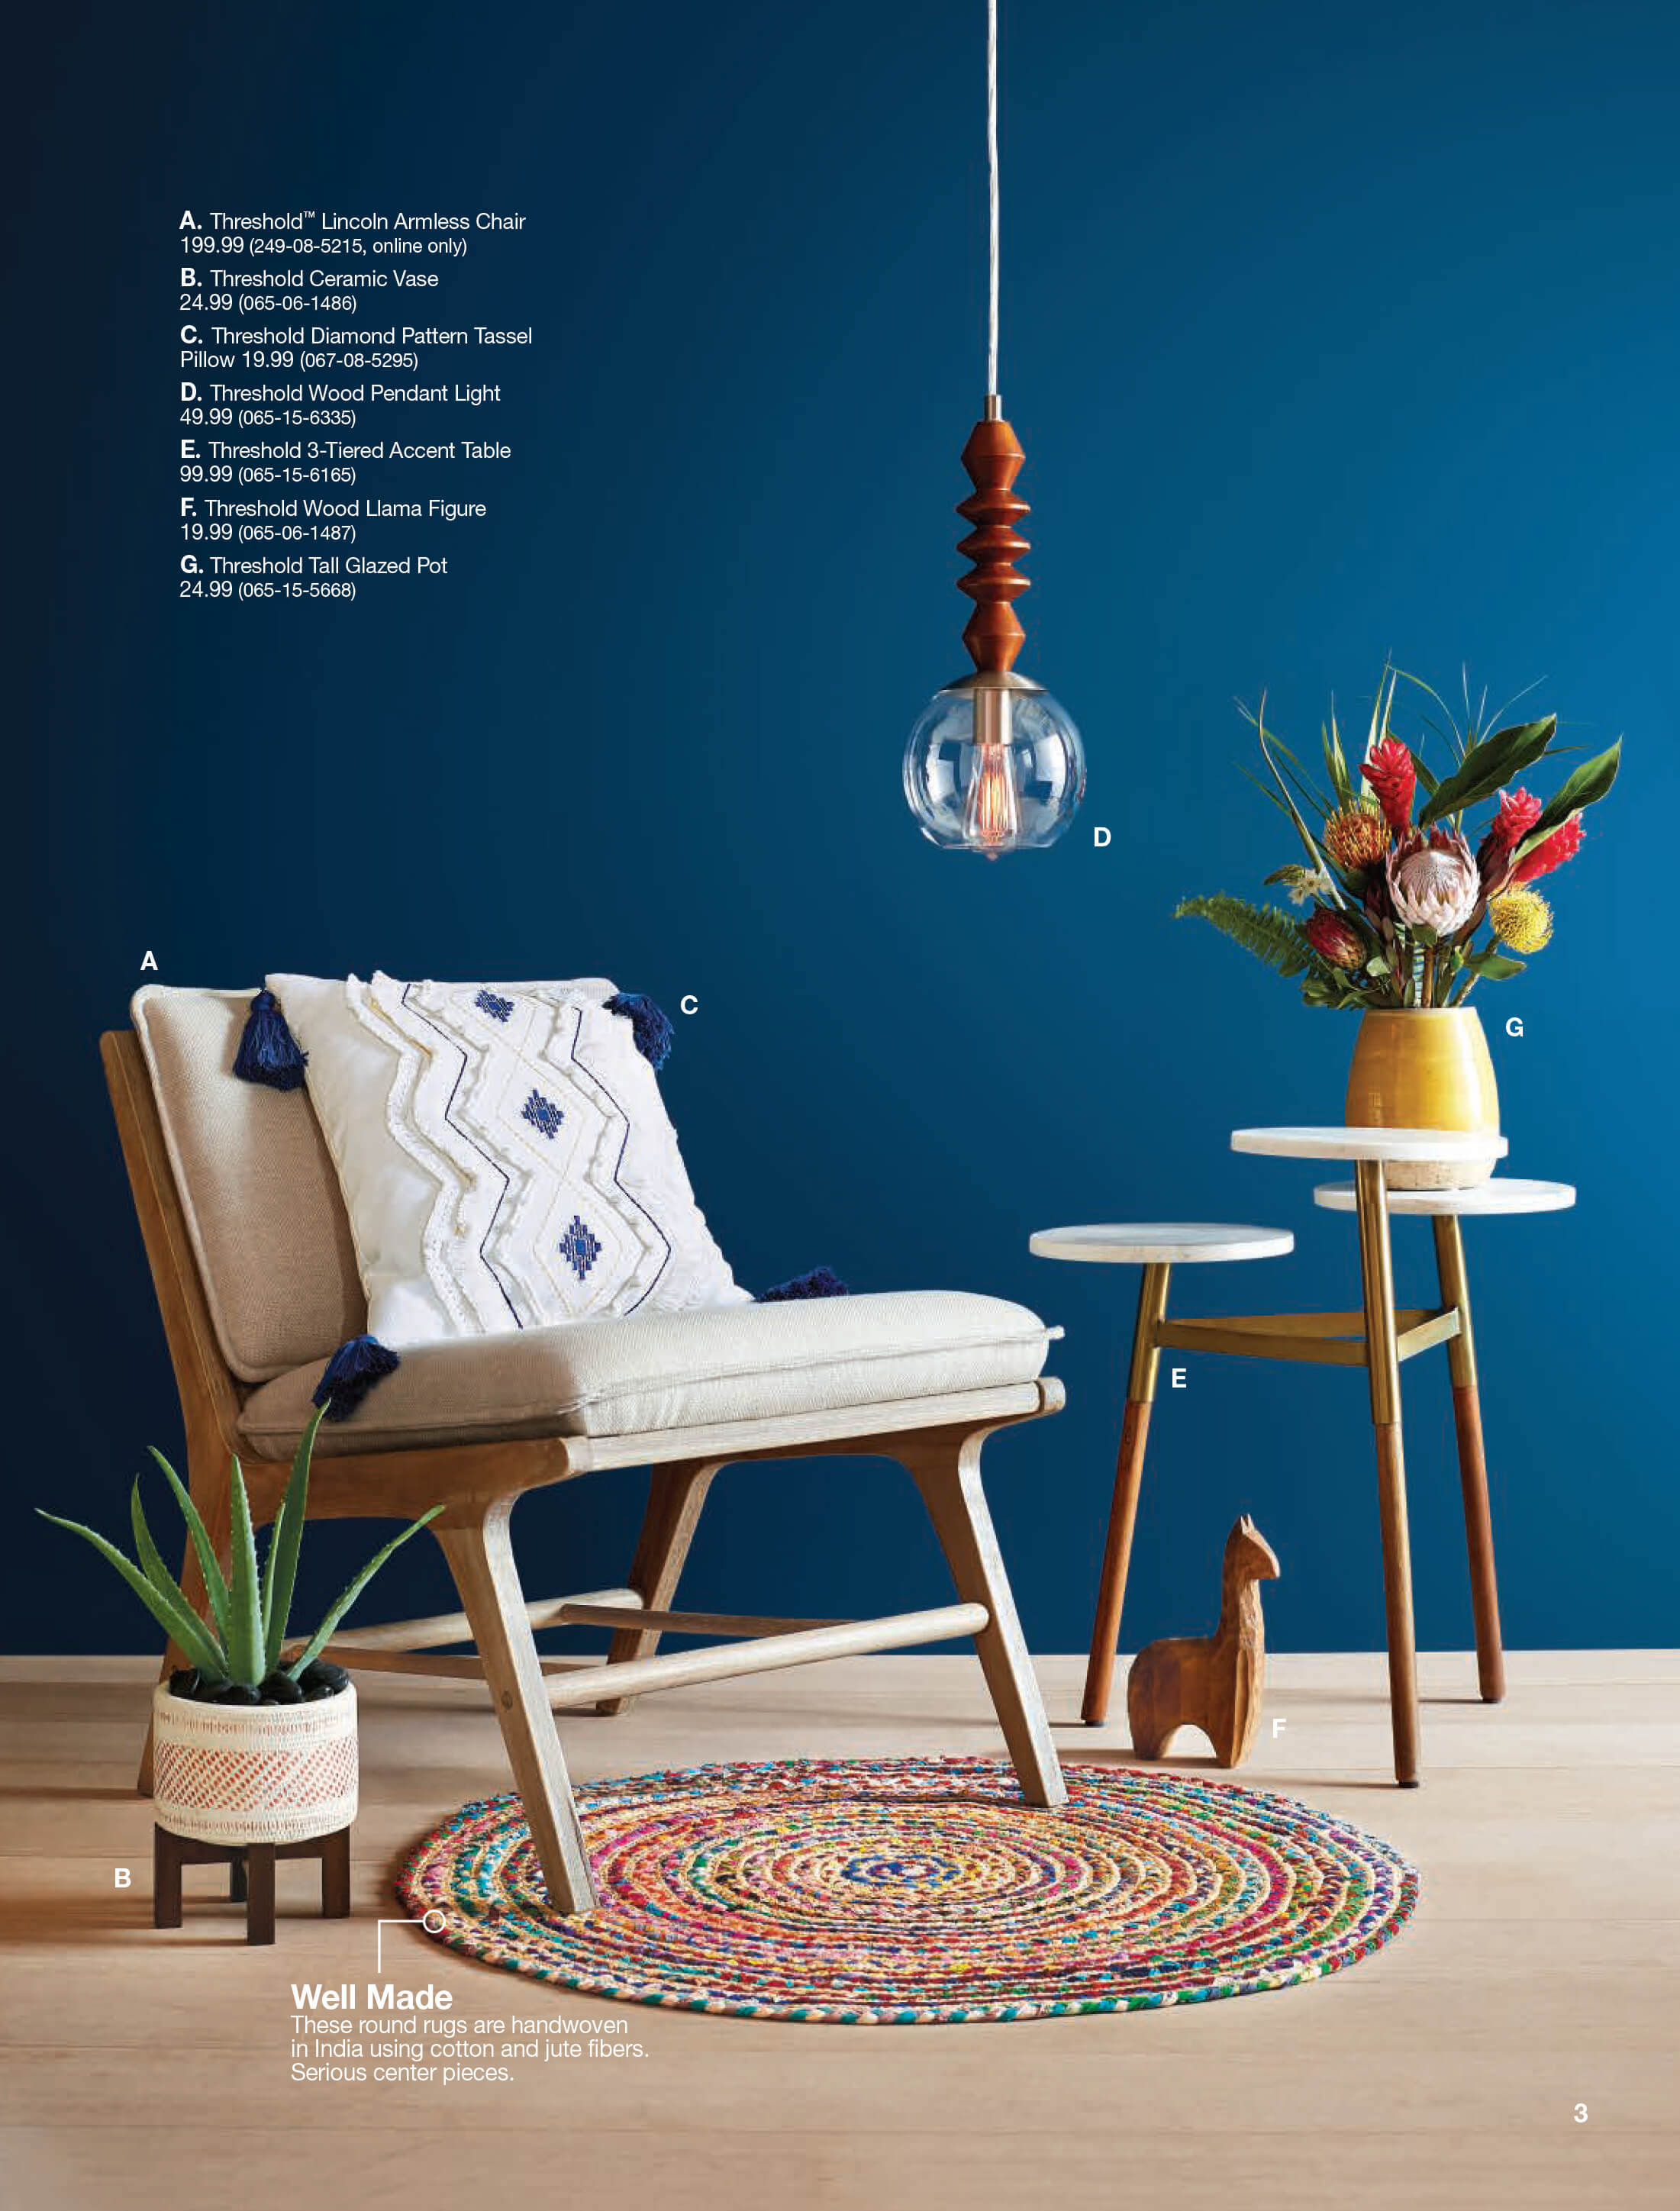 new target home product and emily henderson first look spring catalog threshold teal accent table extra large garden furniture covers mirrored bedside lamps round coffee cover diy